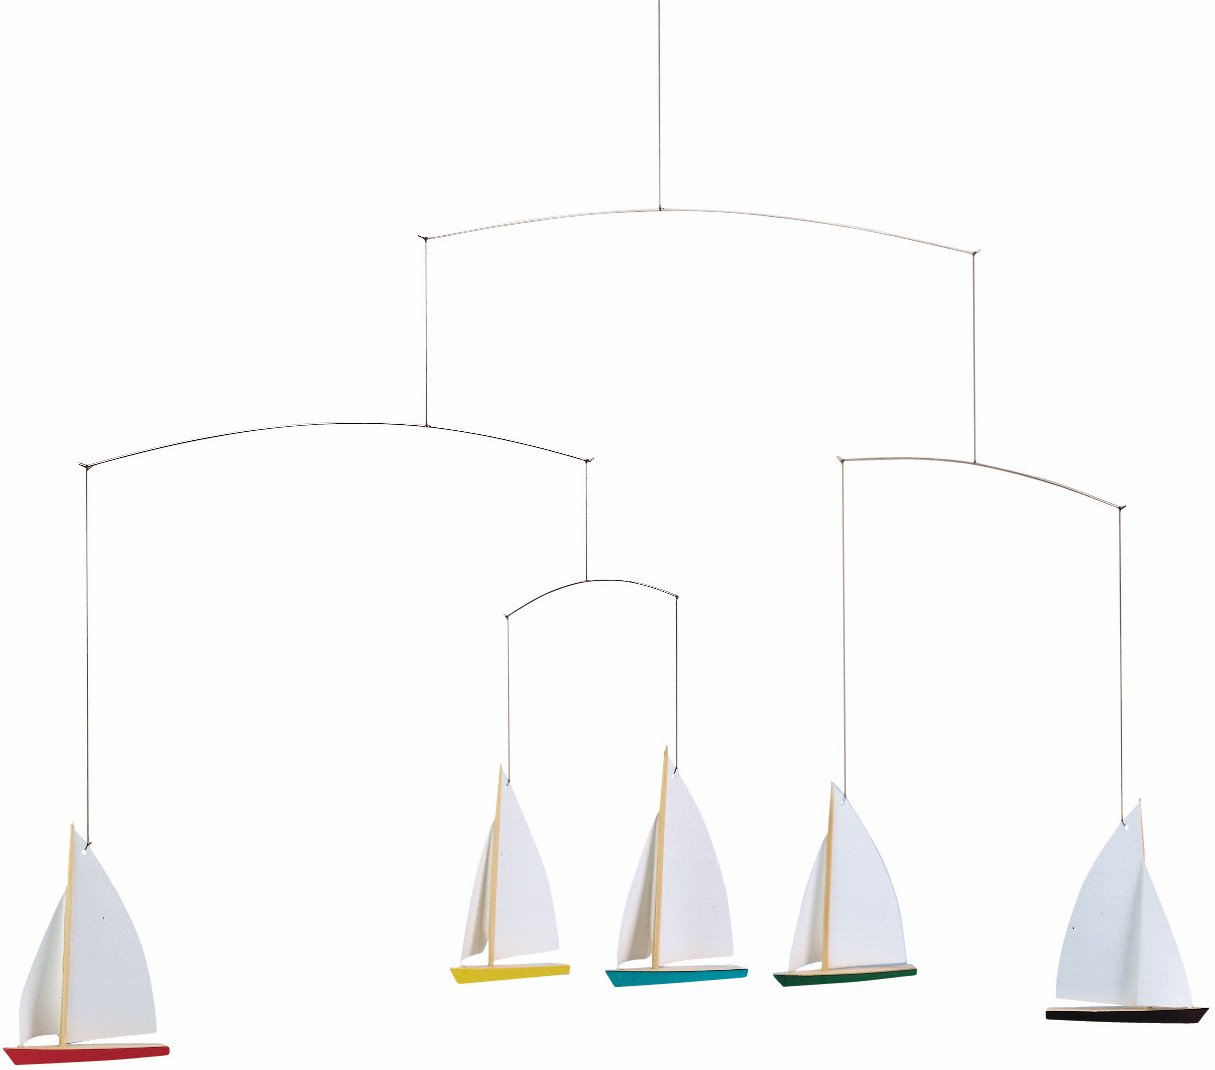 Flensted Mobiles Dinghy Regatta/5 Hanging Mobile - 26 Inches Beech Wood